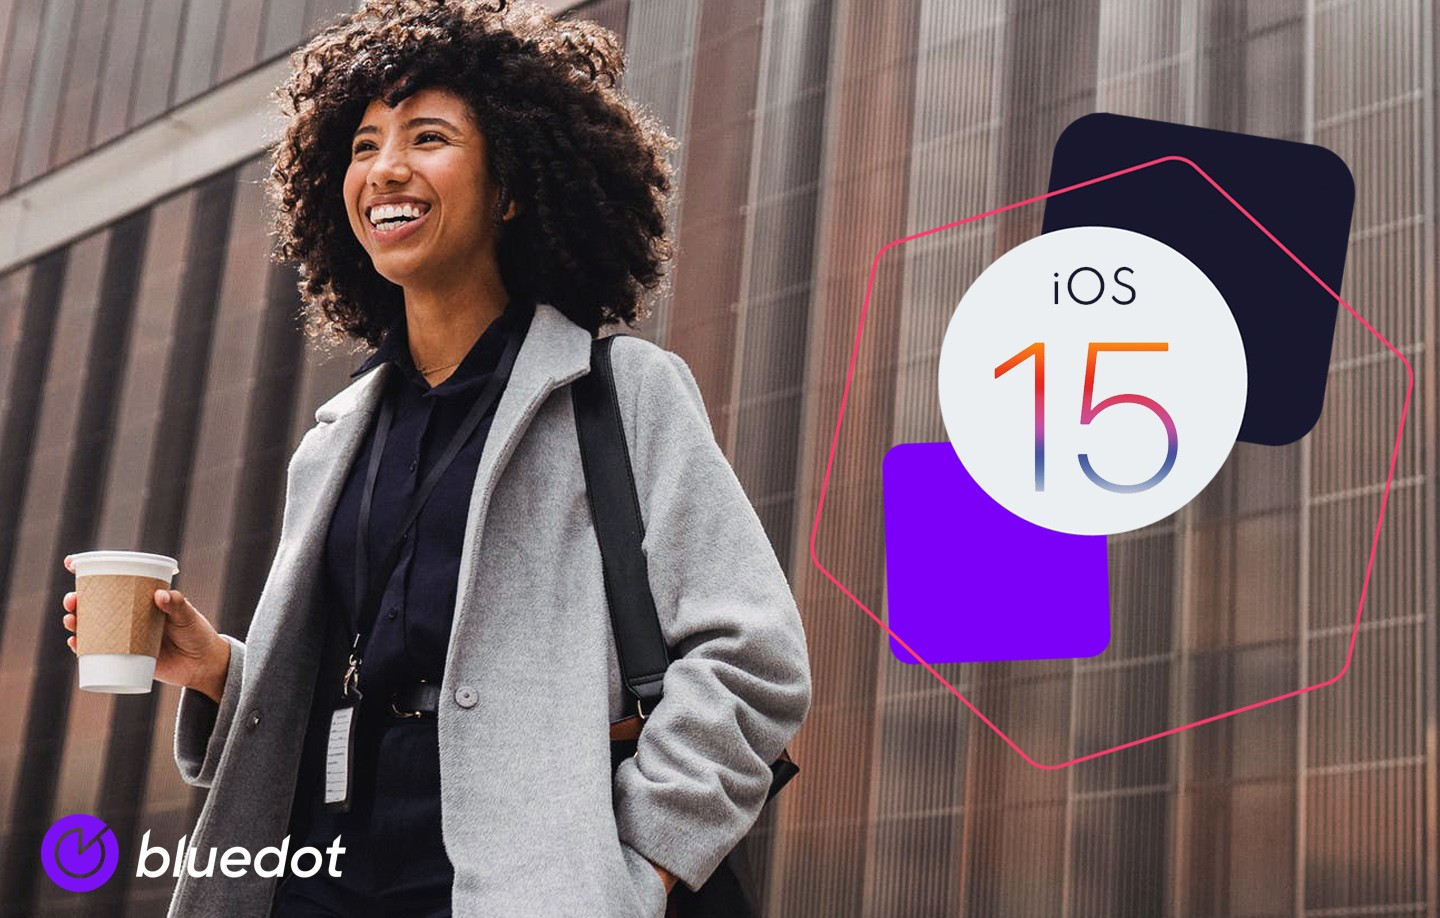 iOS 15: New Features and Increased Data Visibility for End-Users - Featured Image